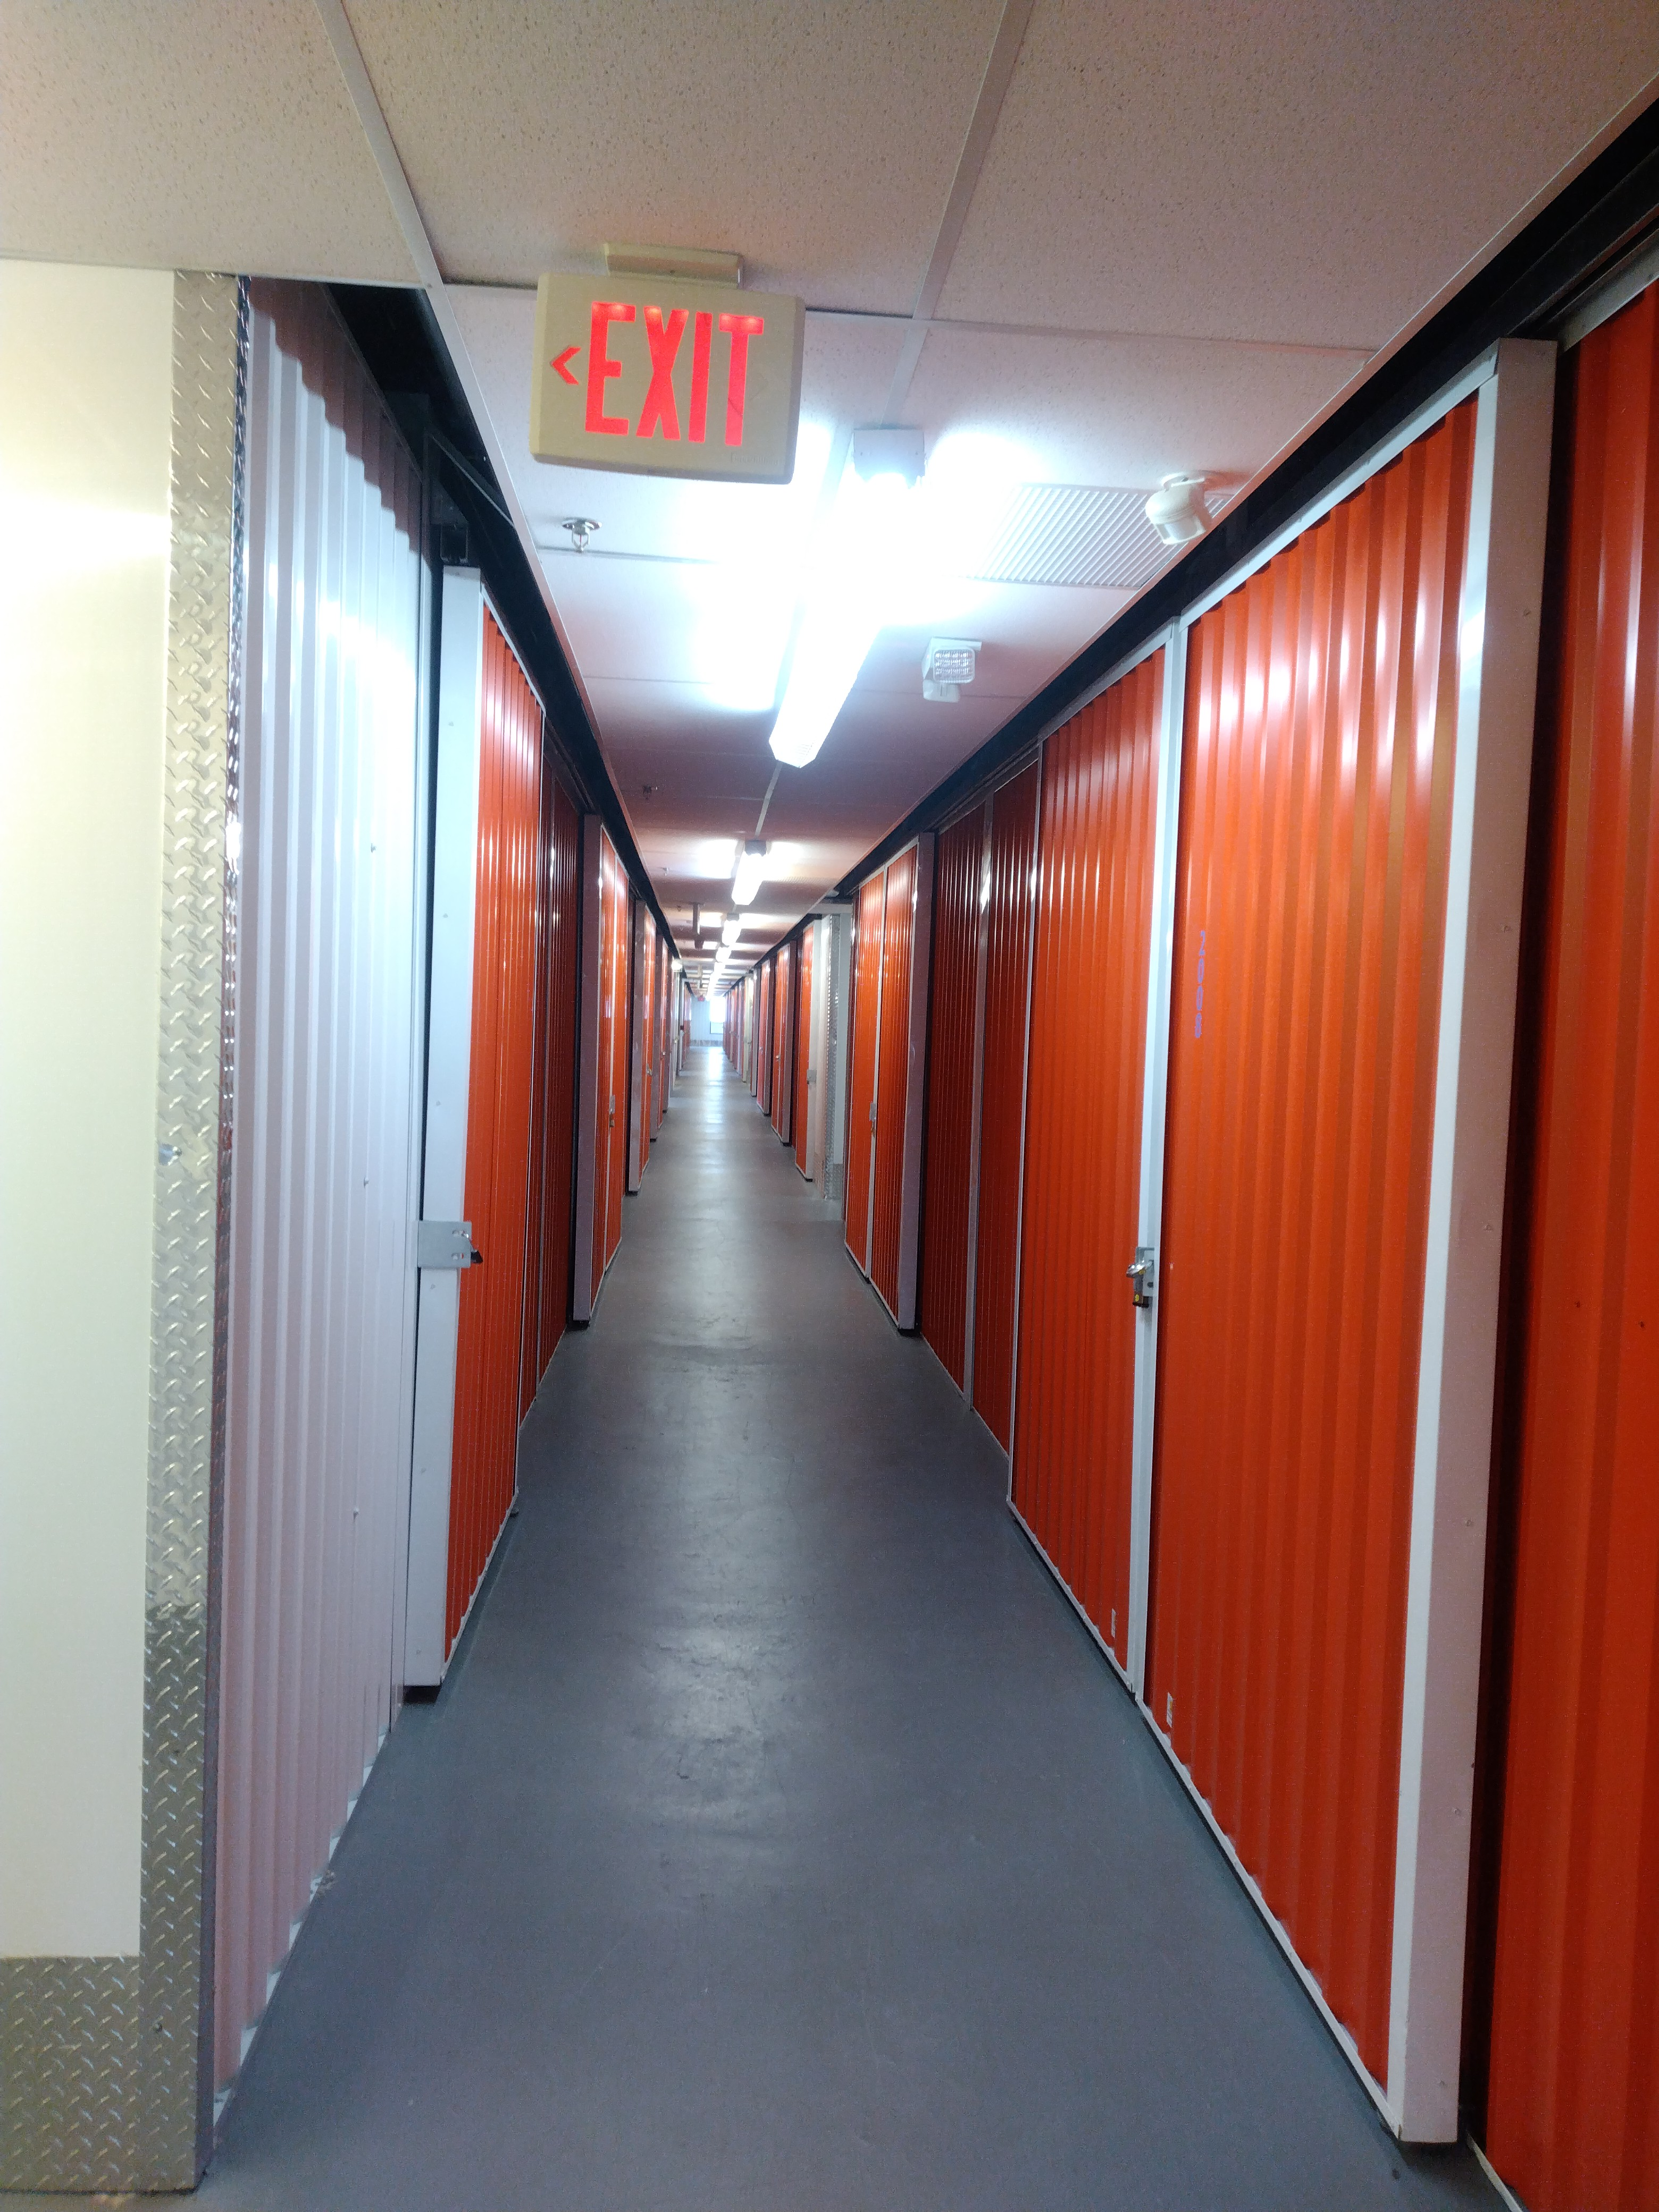 interior hallway climate units in gulfport, ms